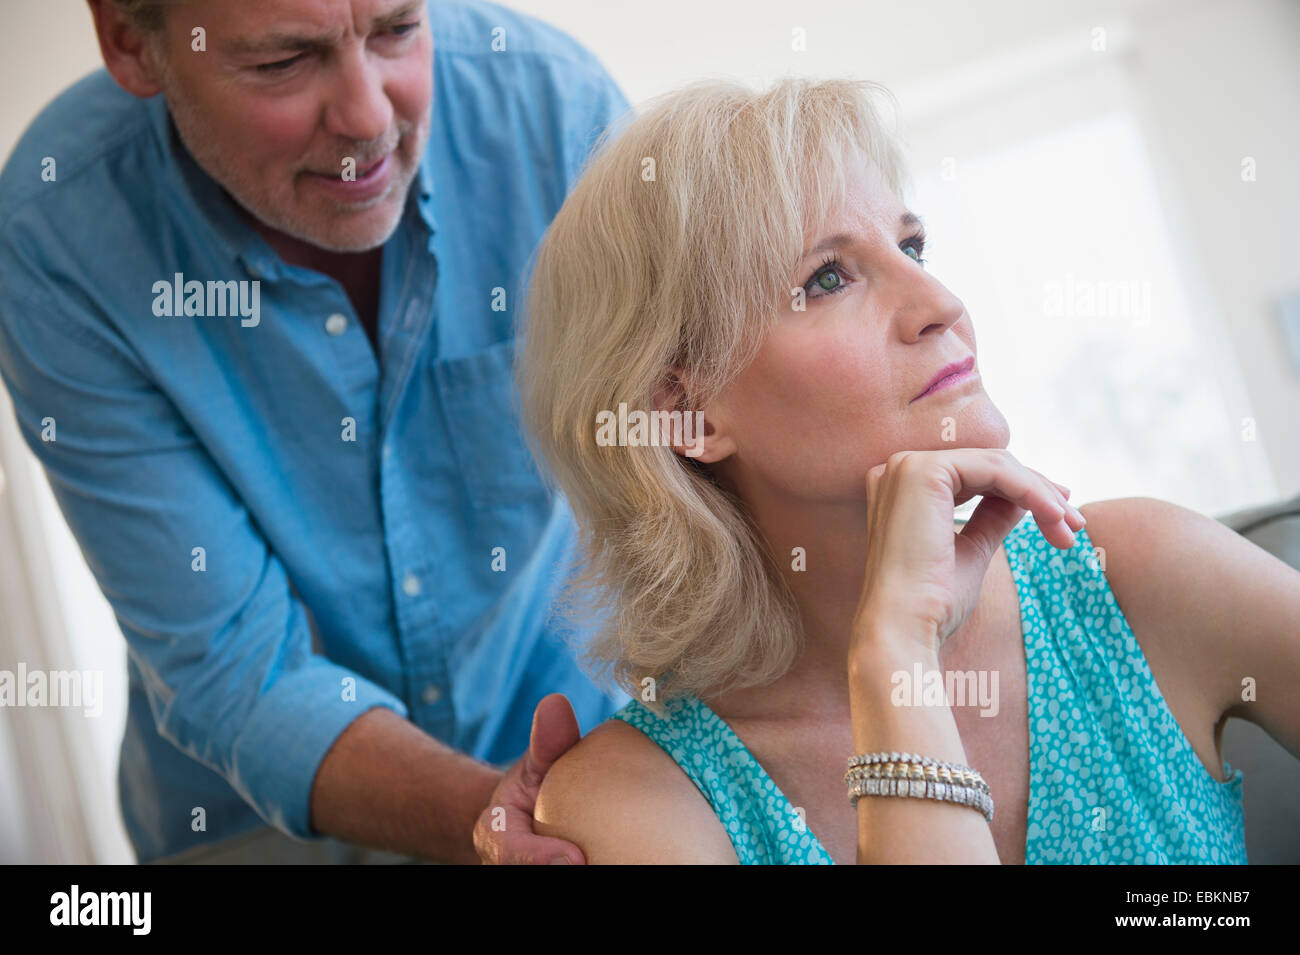 Portrait of couple experiencing relationship difficulties - Stock Image